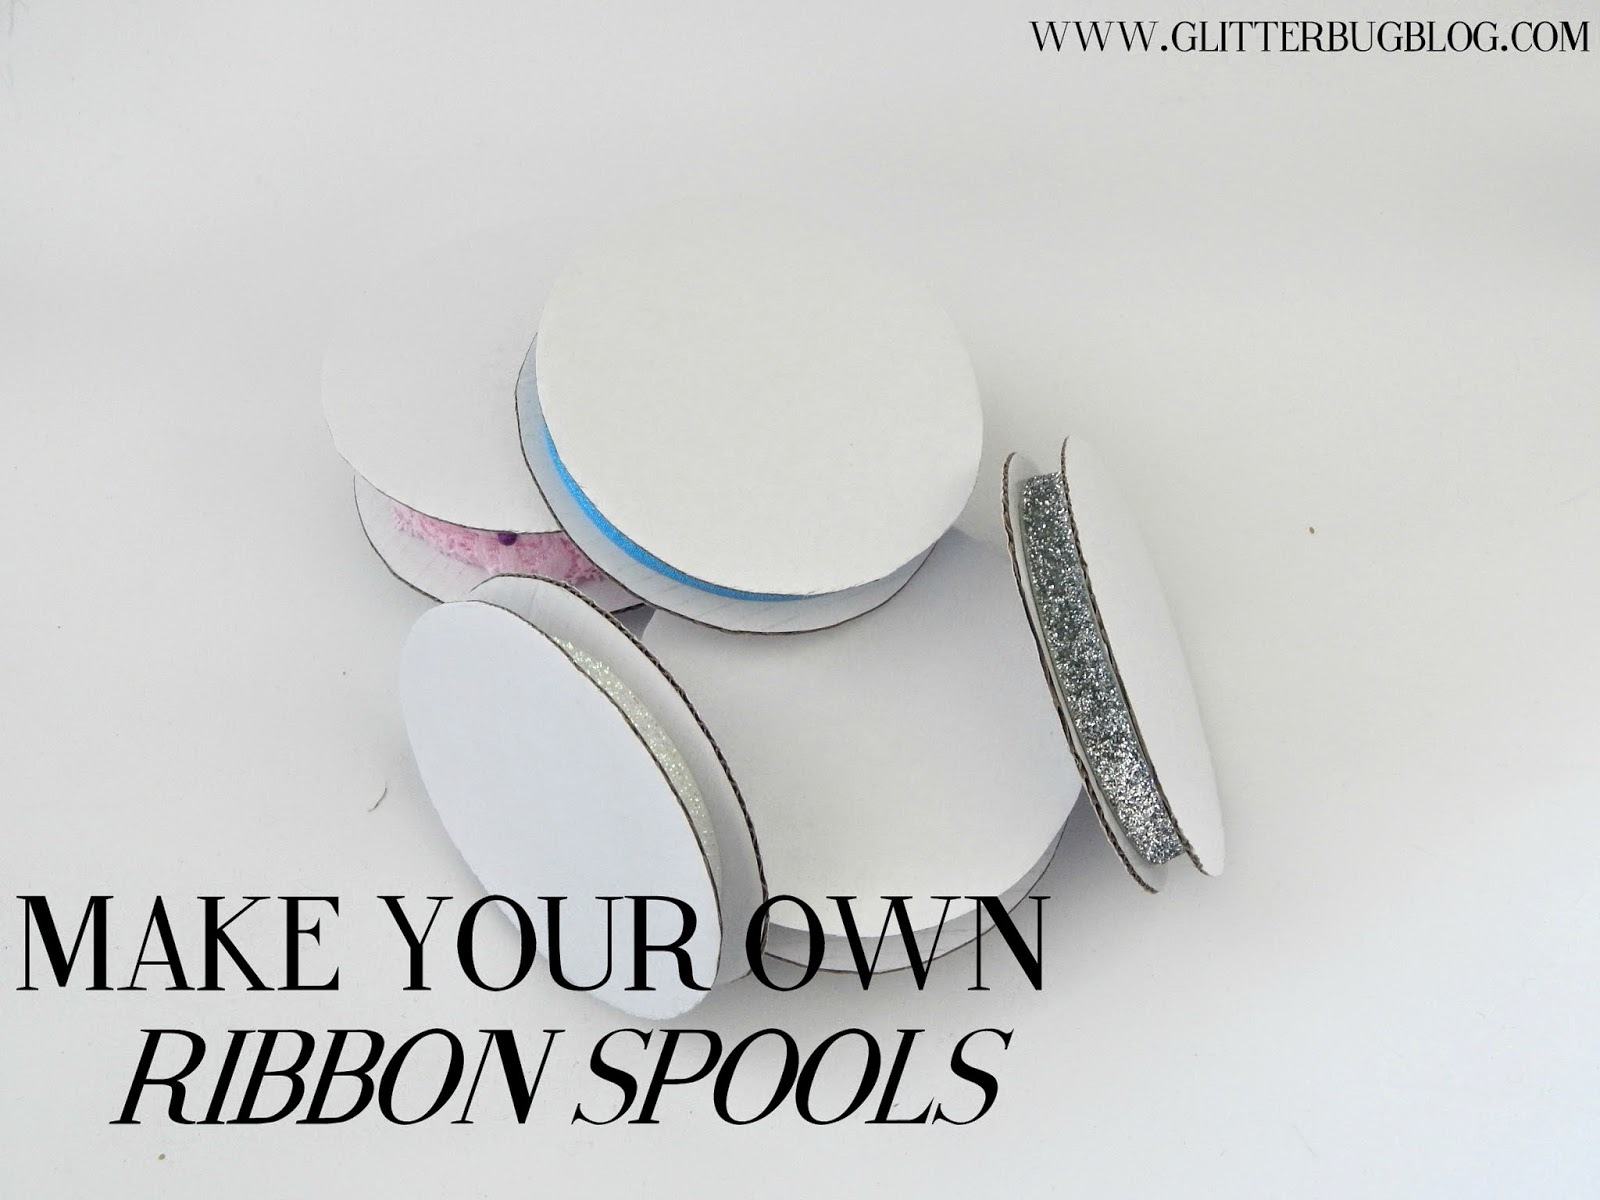 Make Your Own Ribbon Spools